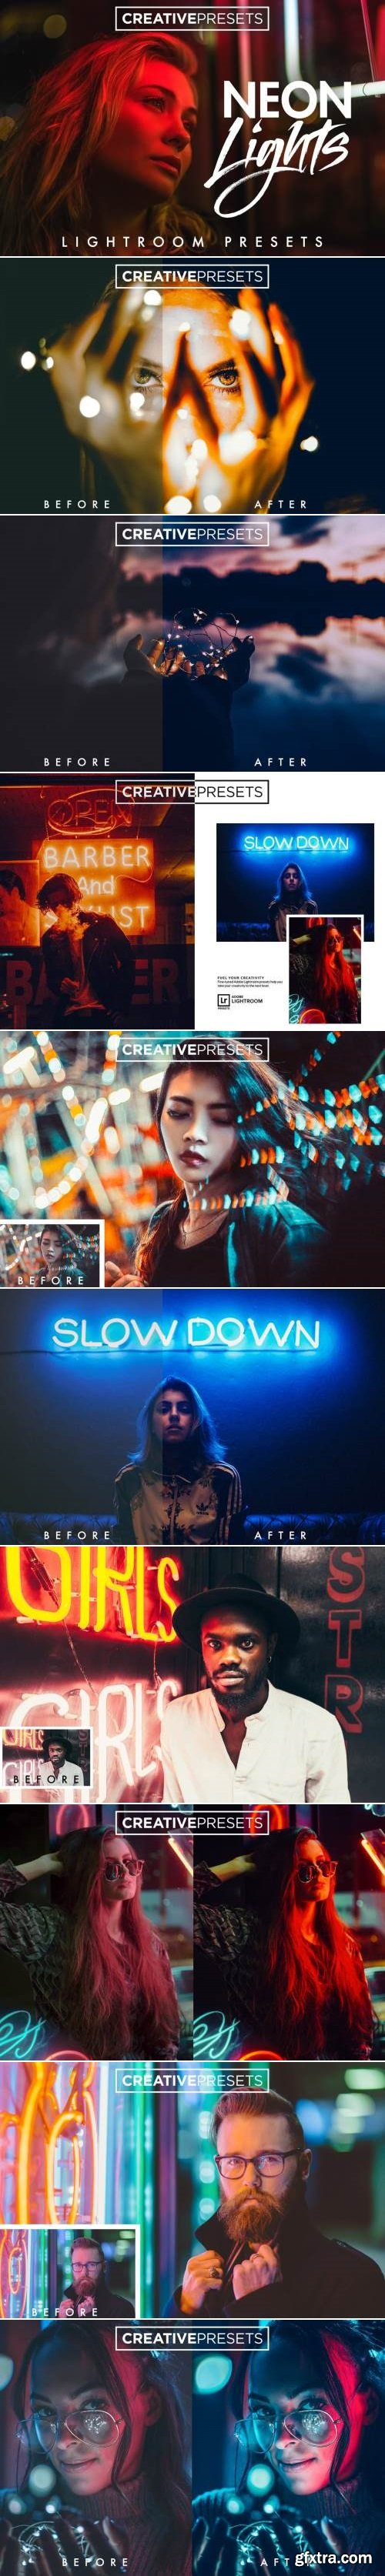 Neon Lights Lightroom Presets